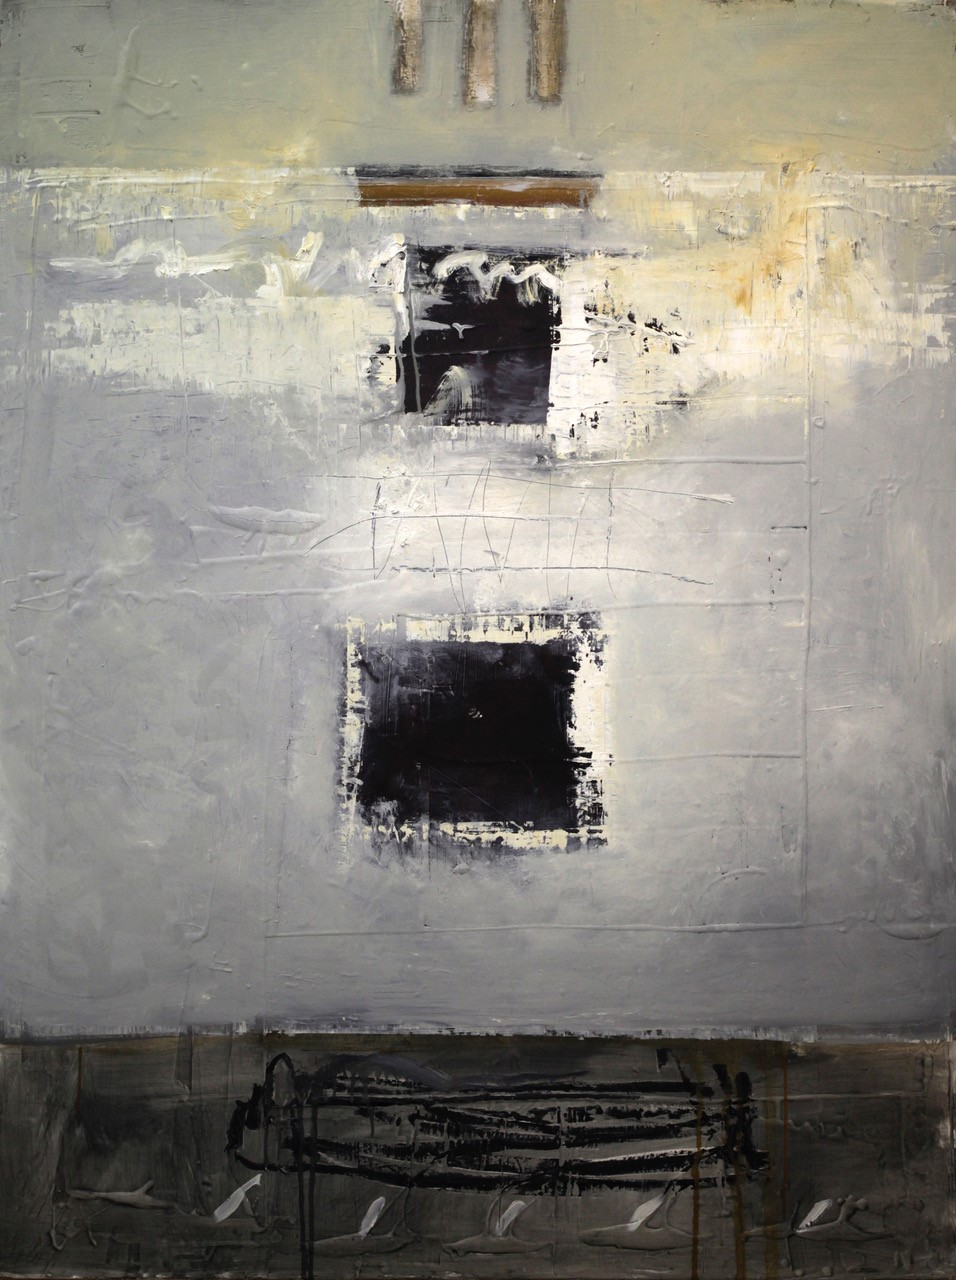 McCaw, John, Windows_Mixed media on board_60 x 45 x 3_$11,500